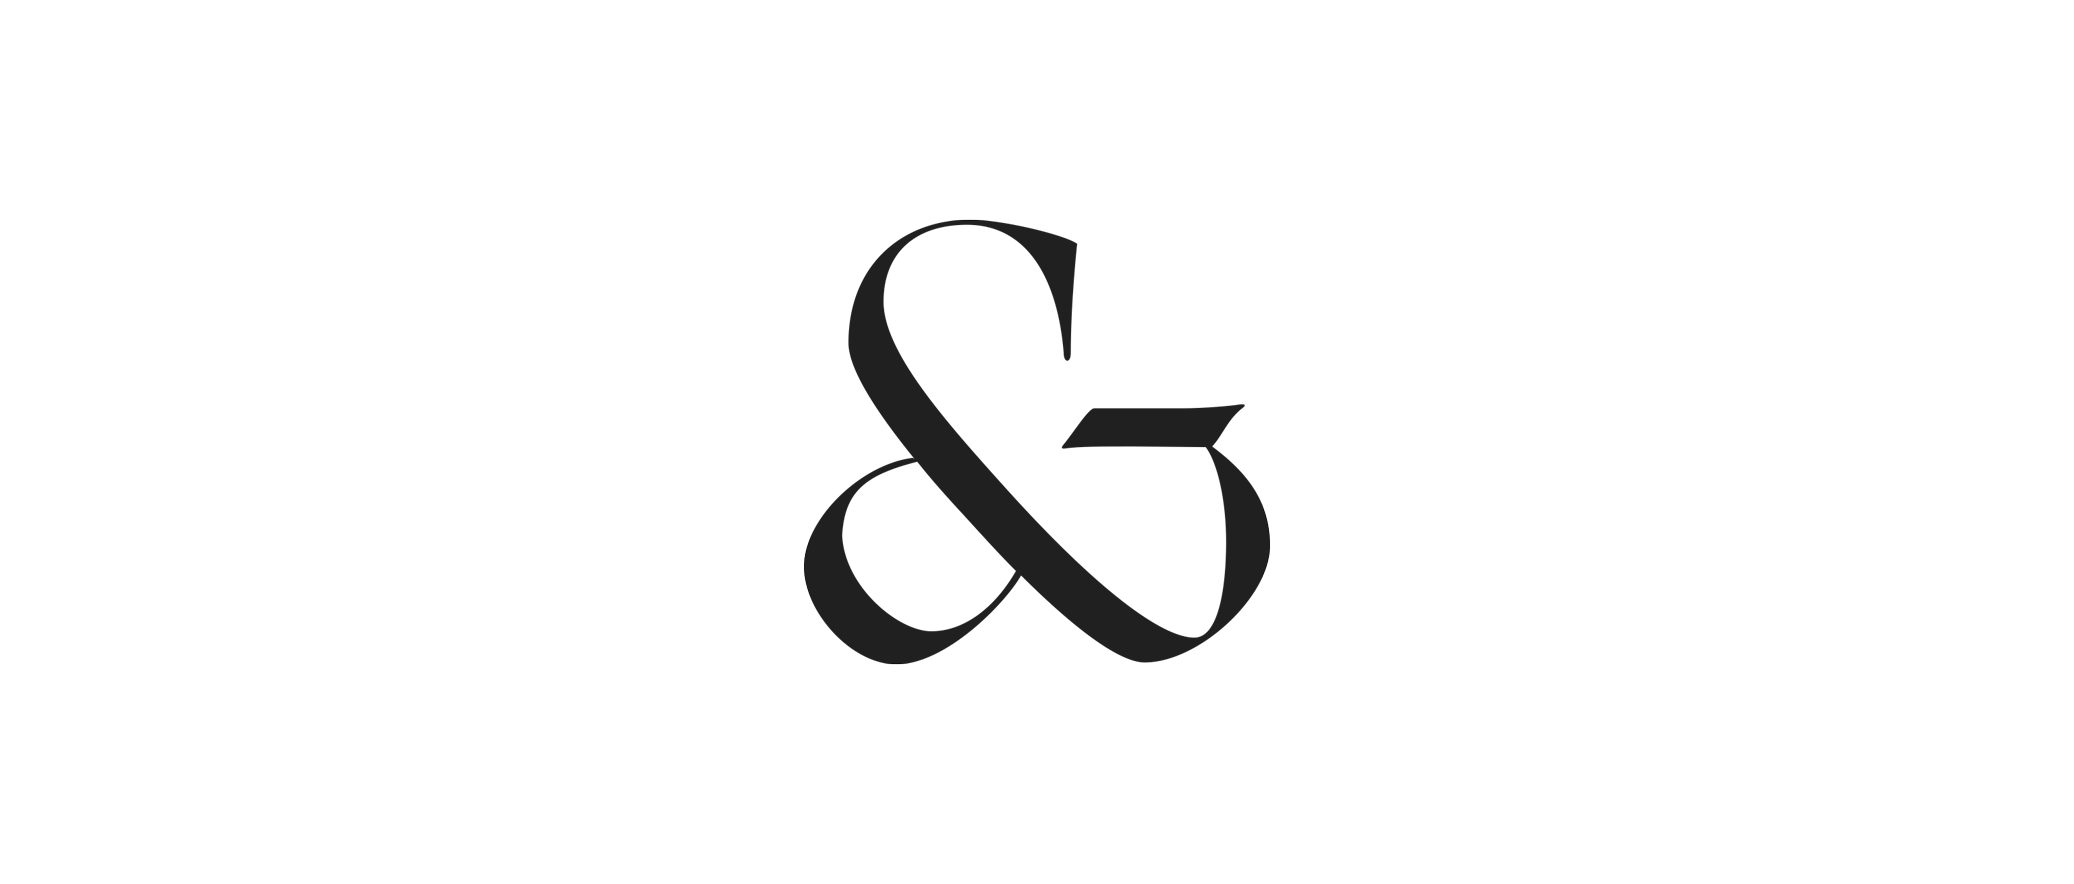 Ampersand calligraphy png. Ogg font review journal